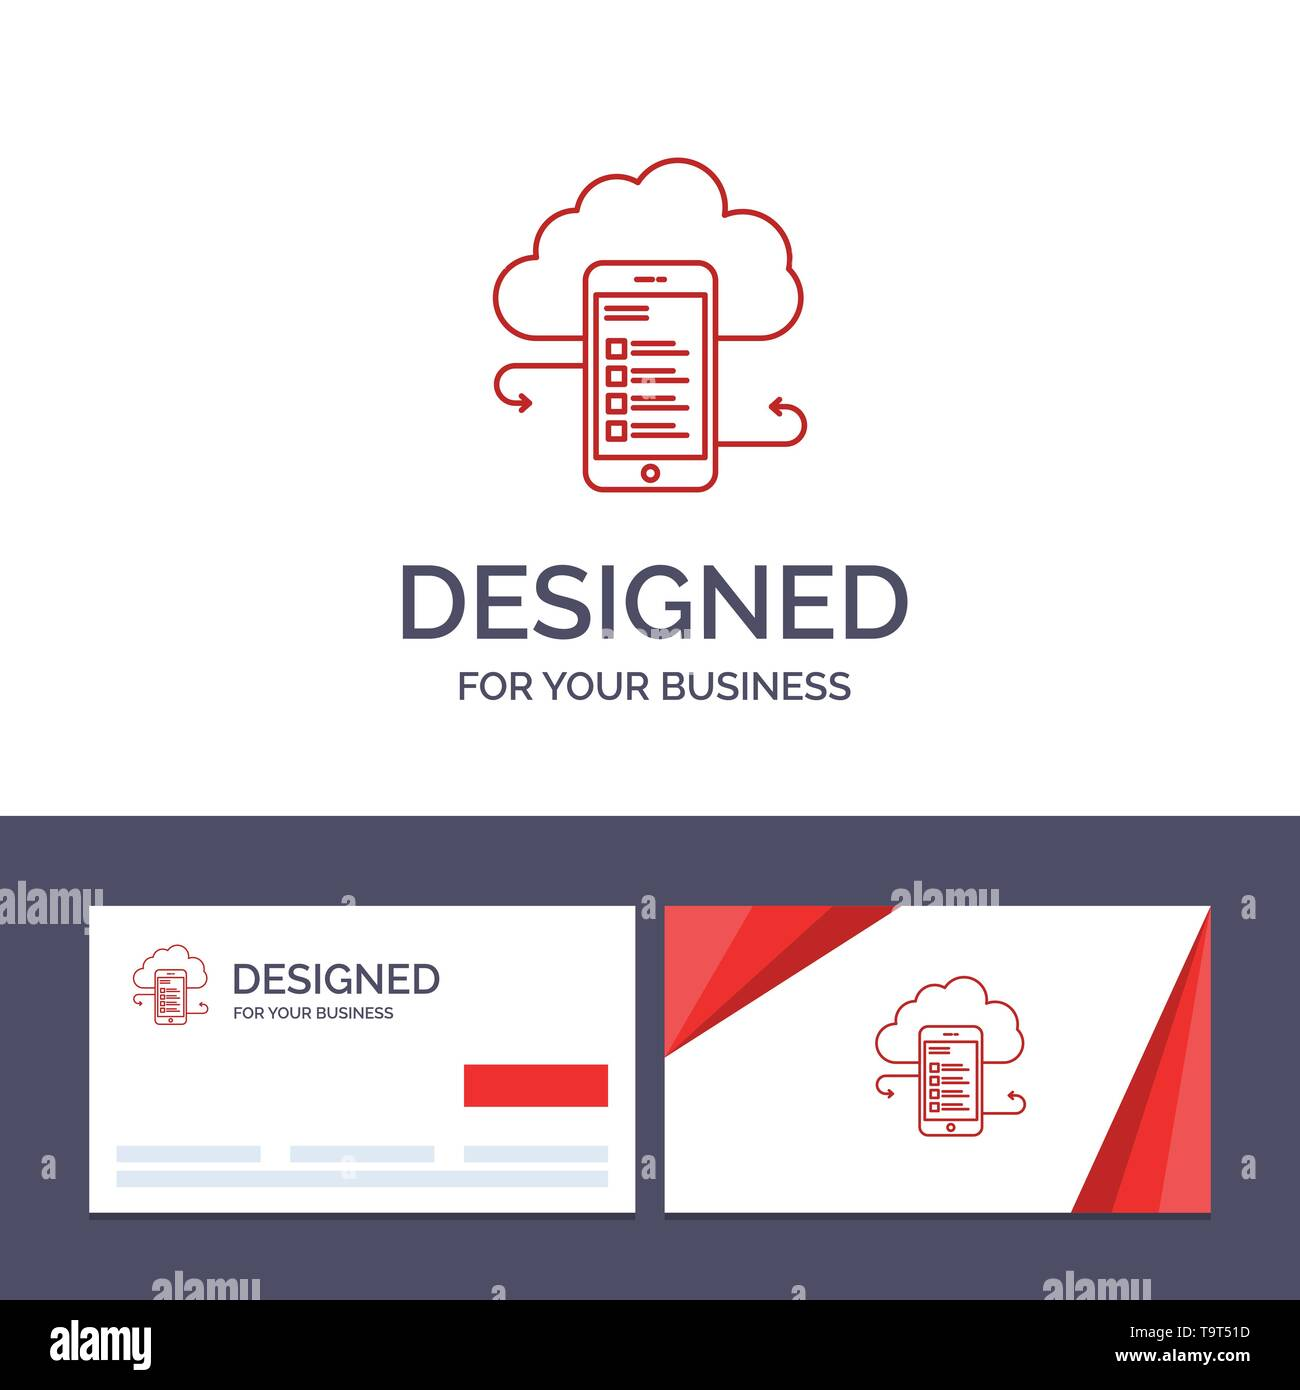 Creative Business Card and Logo template Cloud storage, Business, Cloud Storage, Clouds, Information, Mobile, Safety Vector Illustration - Stock Image